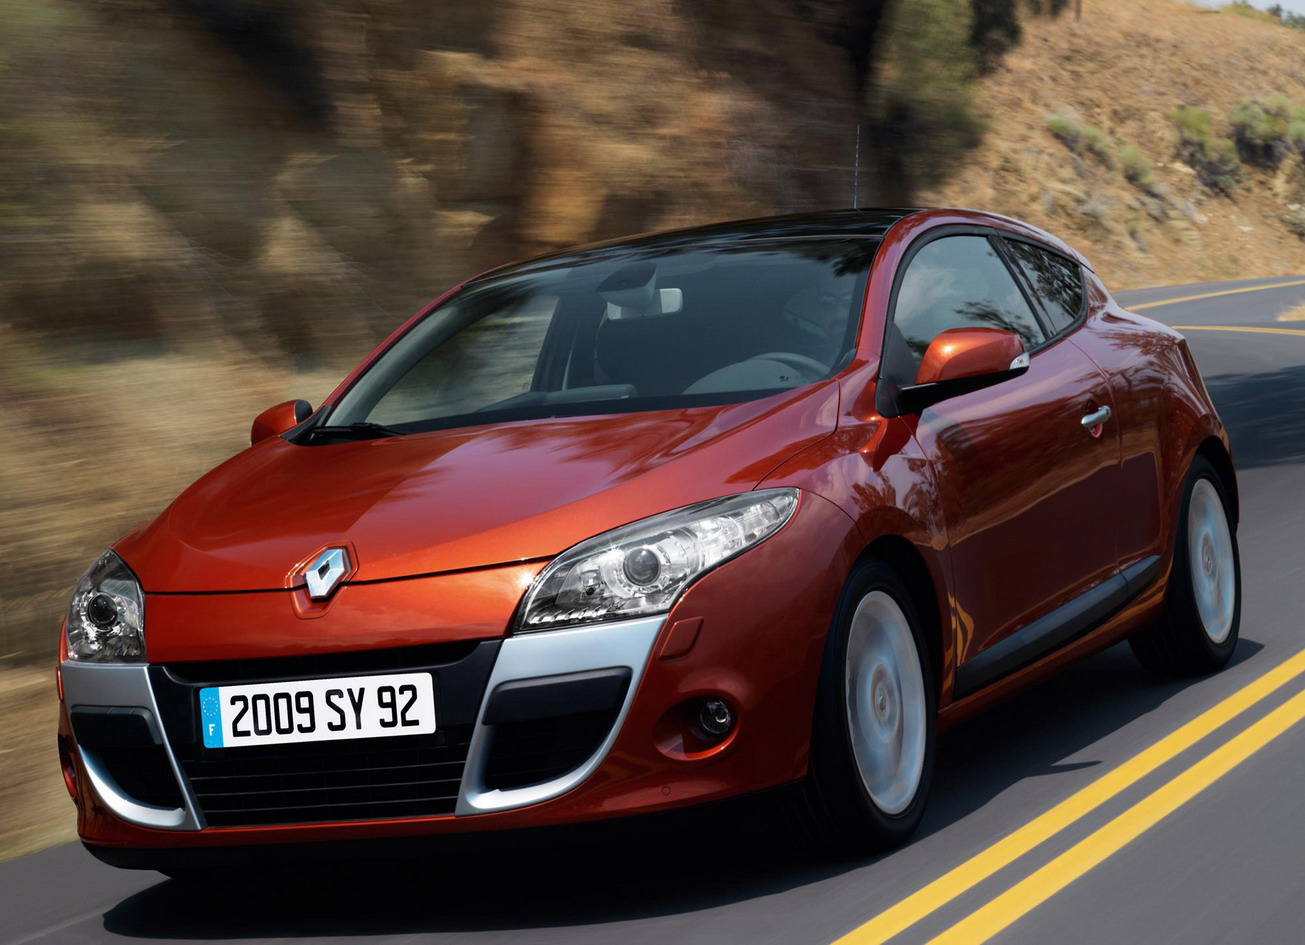 Pictures of renault megane iii coupe 2009